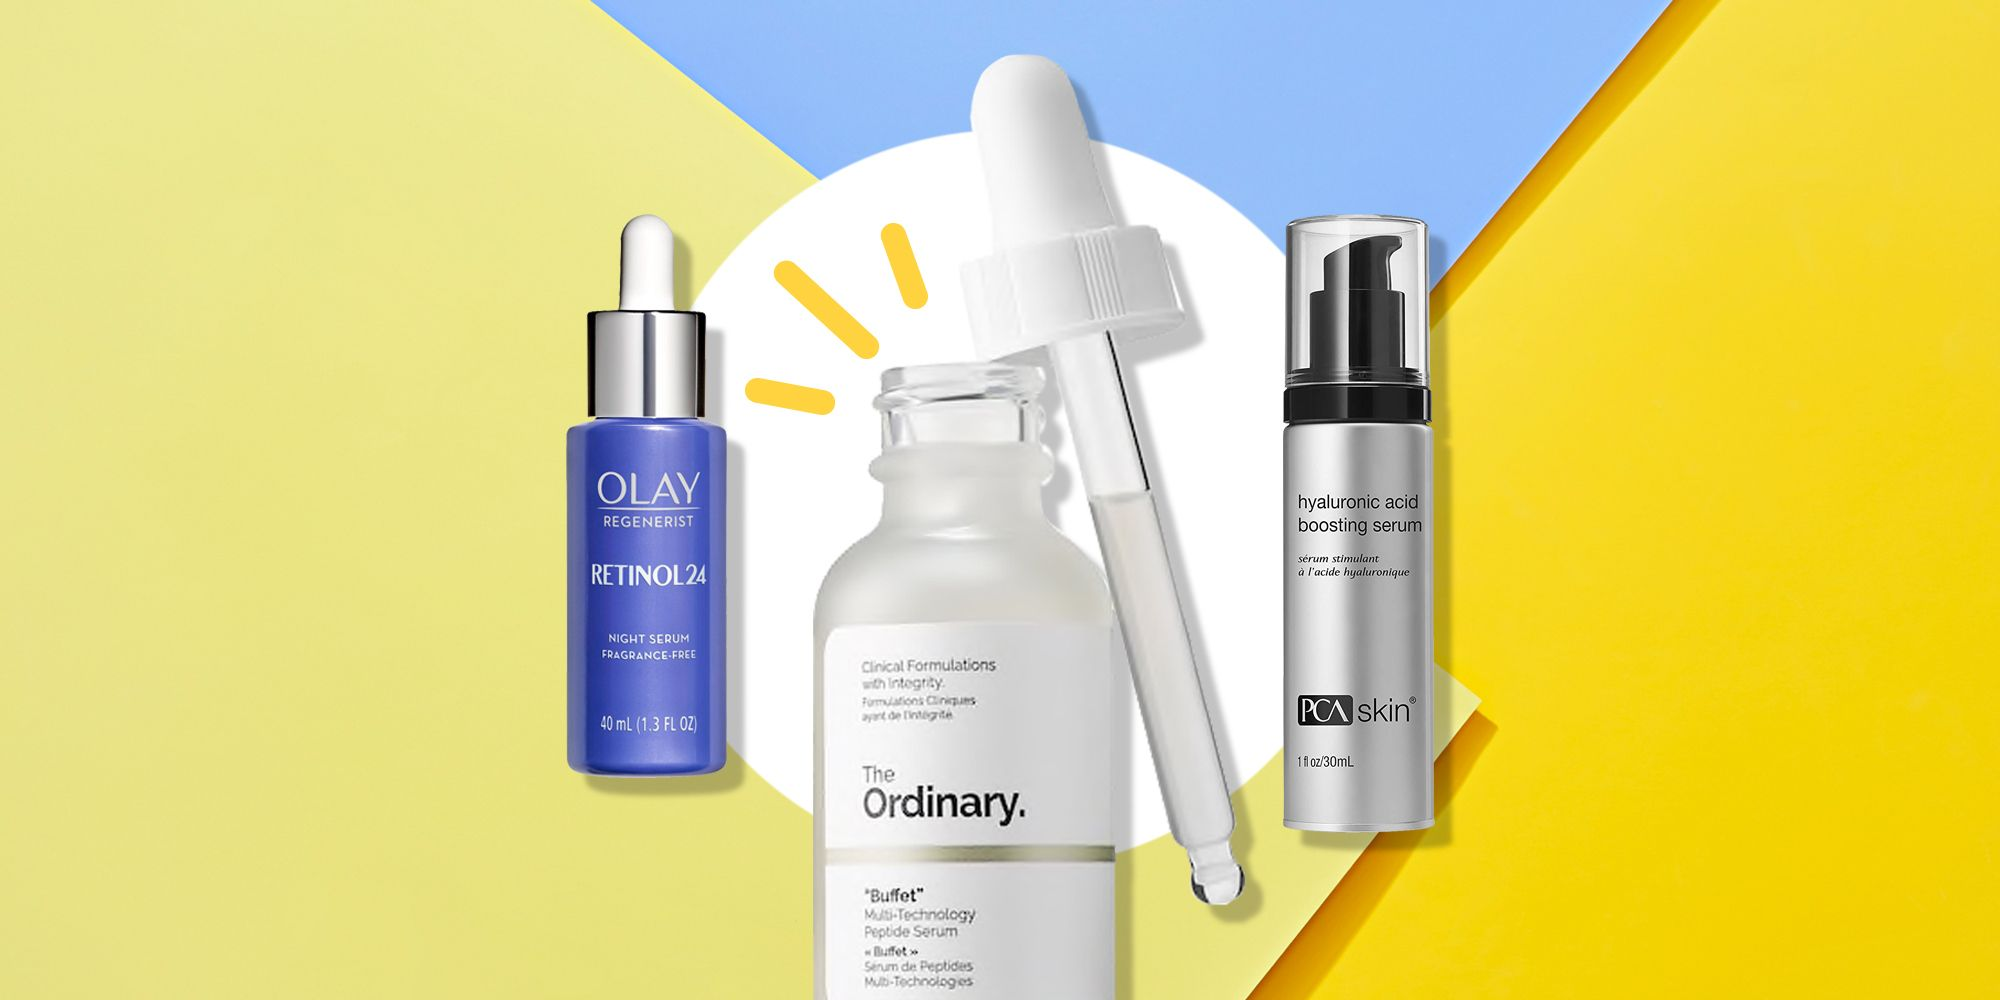 12 Best Face Serums For All Skin Types 12 - Top Facial Serums